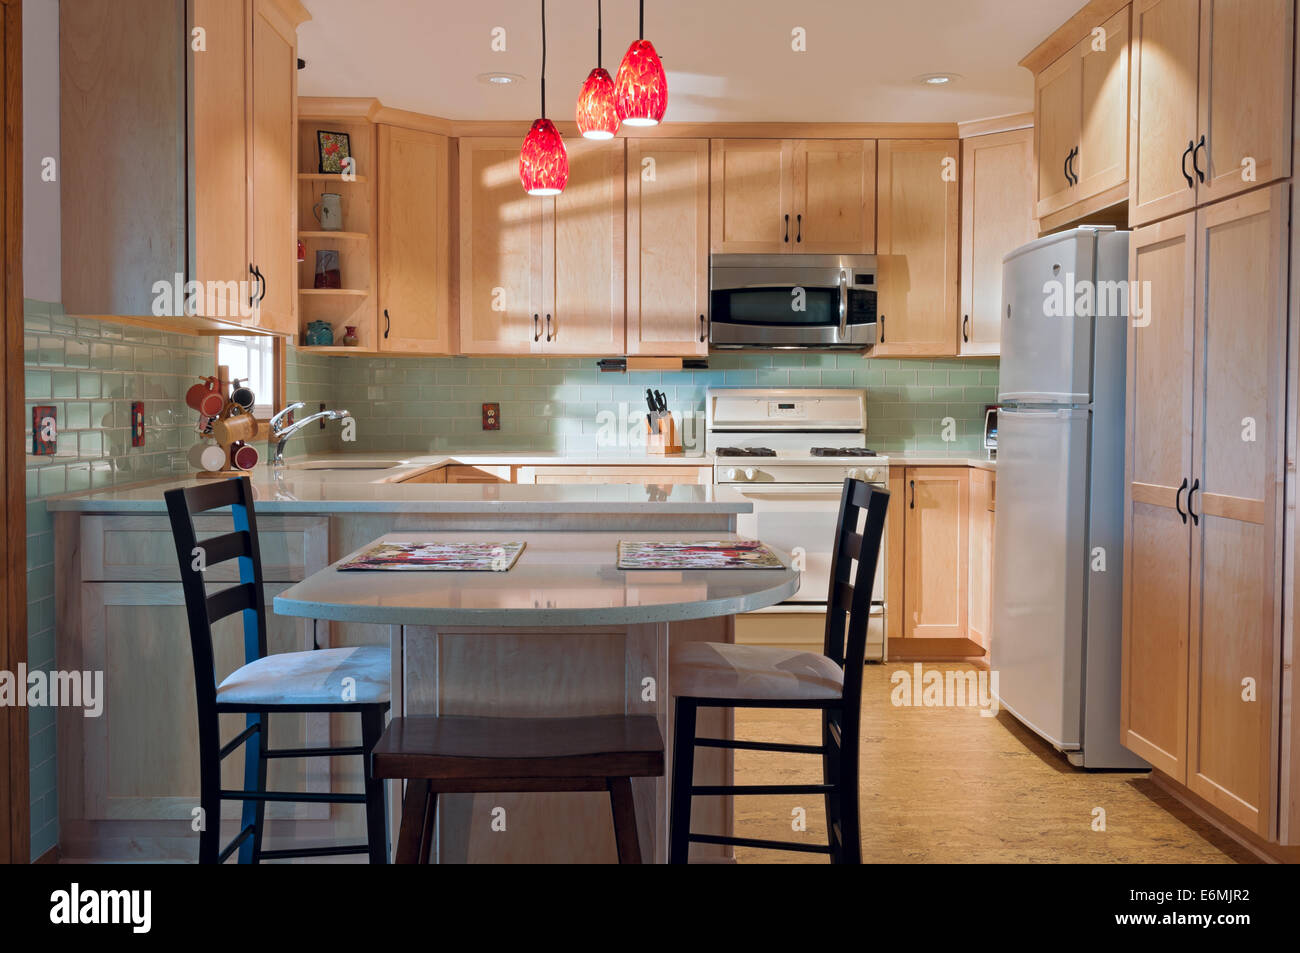 Tile Backsplash Stockfotos & Tile Backsplash Bilder - Alamy